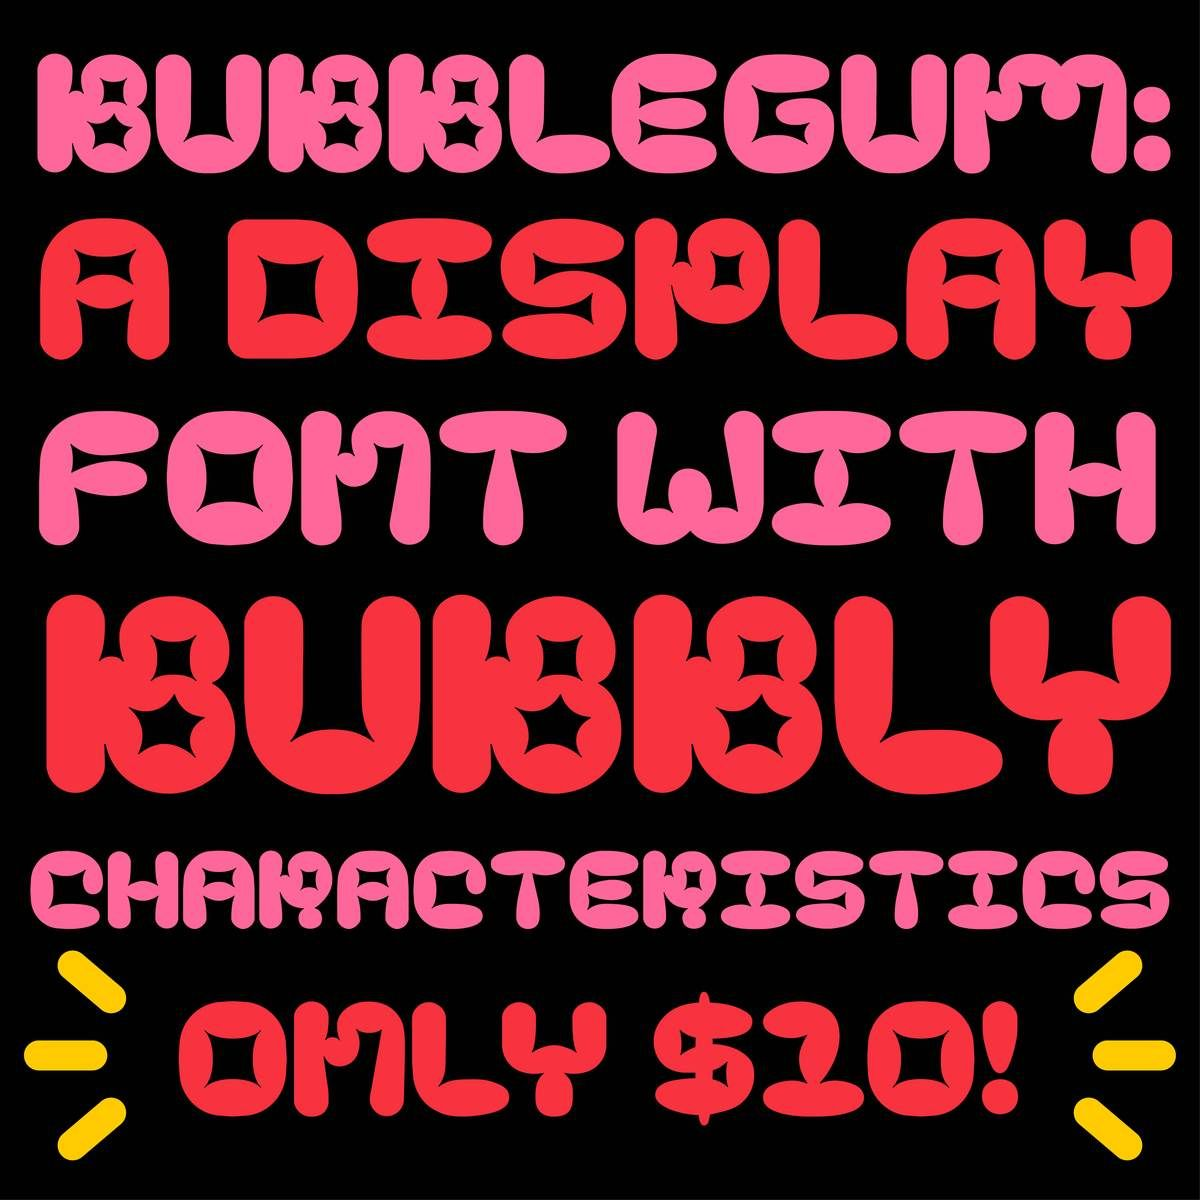 A Quirky Little Display Font With A Bubbly Personality